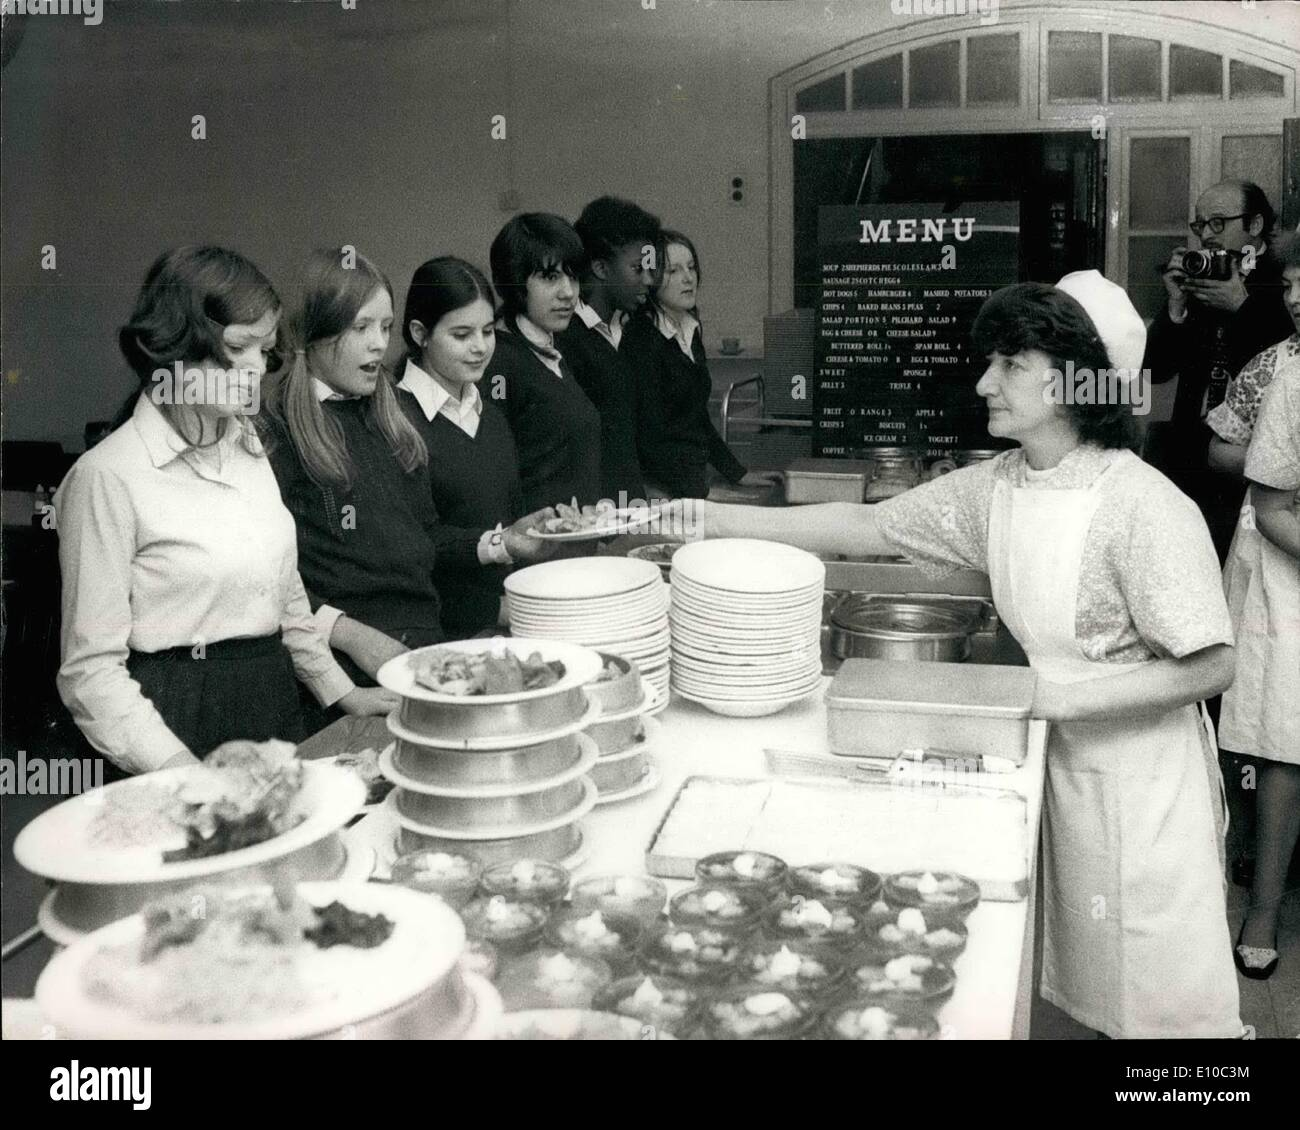 Mar. 22, 1972 - March 22nd 1972 New look for school meals at Barnsbury School for girls in Islington - An experimental cafeteria service at seven inner London secondary schools designed to offer a wide selection of separately priced dishes and snacks in addition to the traditional school meal, has been approved by the Schools Sub-Committee A special arrangement agreed with the Department of Education and Science will permit prices in the cafeteria to reflect the subsidy normally payable for school dinners -working out at roughly twice the raw food cost Barnsbury School for Girls, Islington, - Stock Image